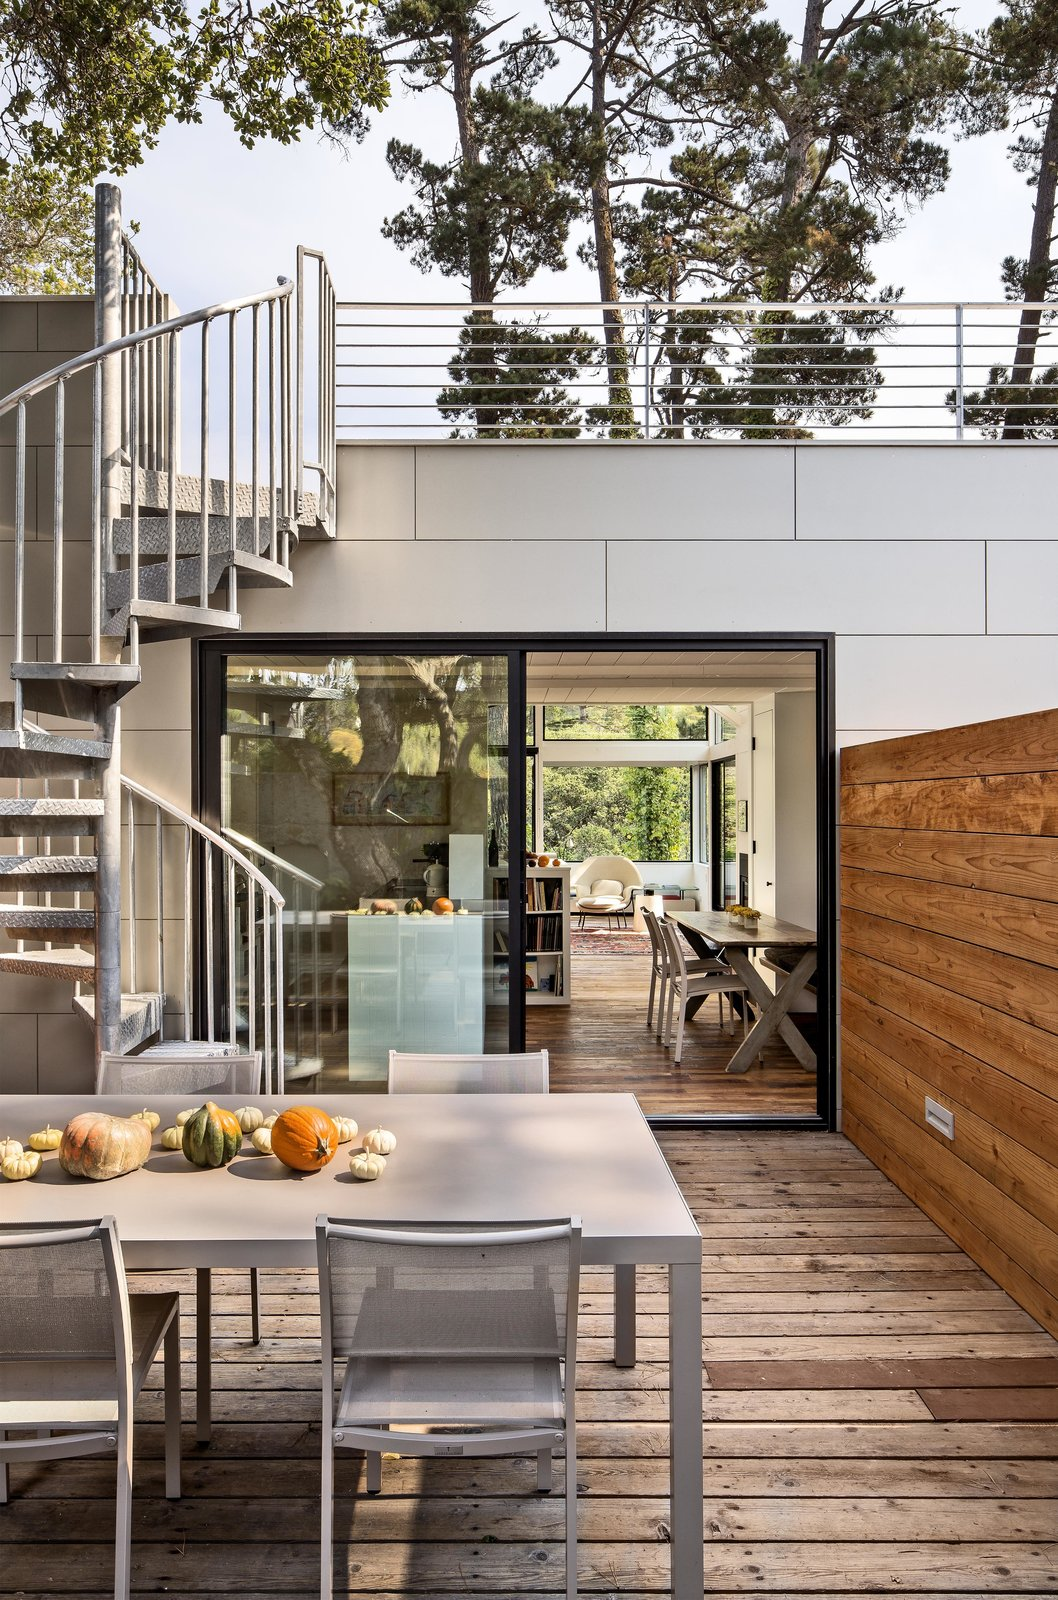 """The house is set on a forested hill, which means the backyard—though scenic—is too steep to enjoy. It's also perpetually shady. Schicketanz wanted somewhere she could soak in the sun, so she added a roof deck. """"It's really the only usable, large outdoor space I have,"""" she says.  Photo 1 of 10 in Bright Renovation of a 1970s Big Sur Home from Torres House"""